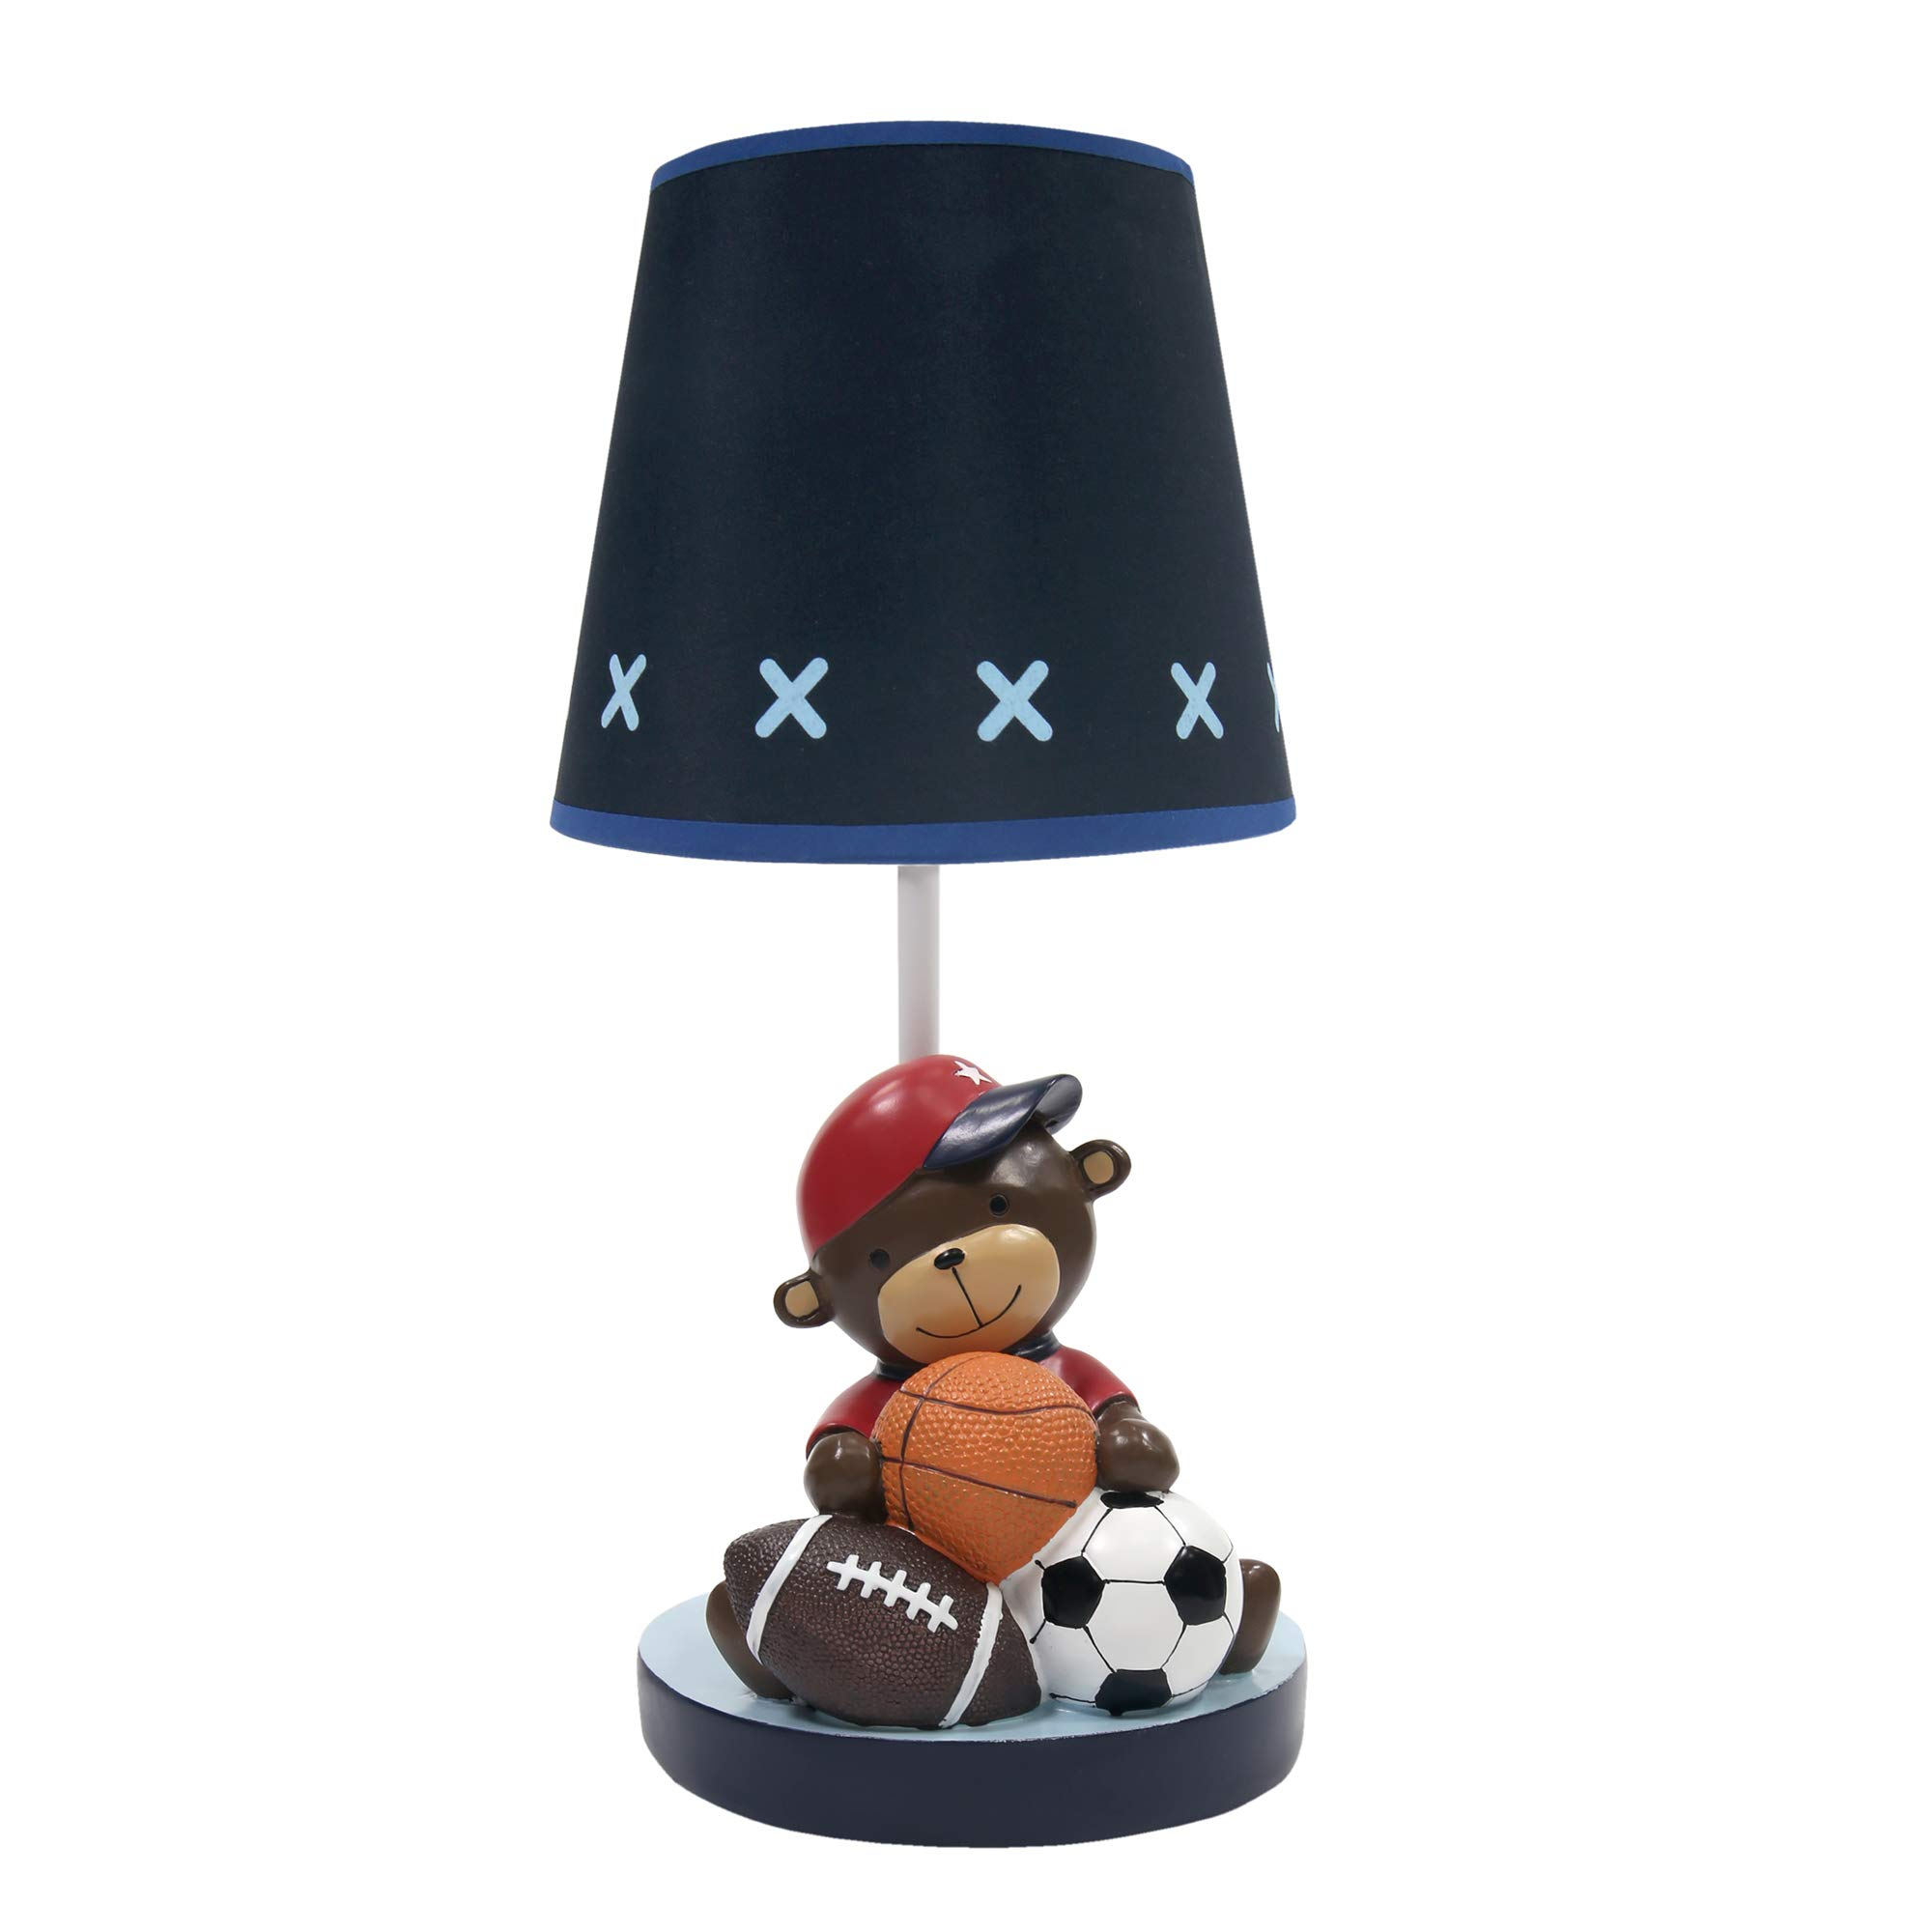 Lambs & Ivy Future All Star Lamp with Shade & Bulb, Blue by Lambs & Ivy (Image #1)